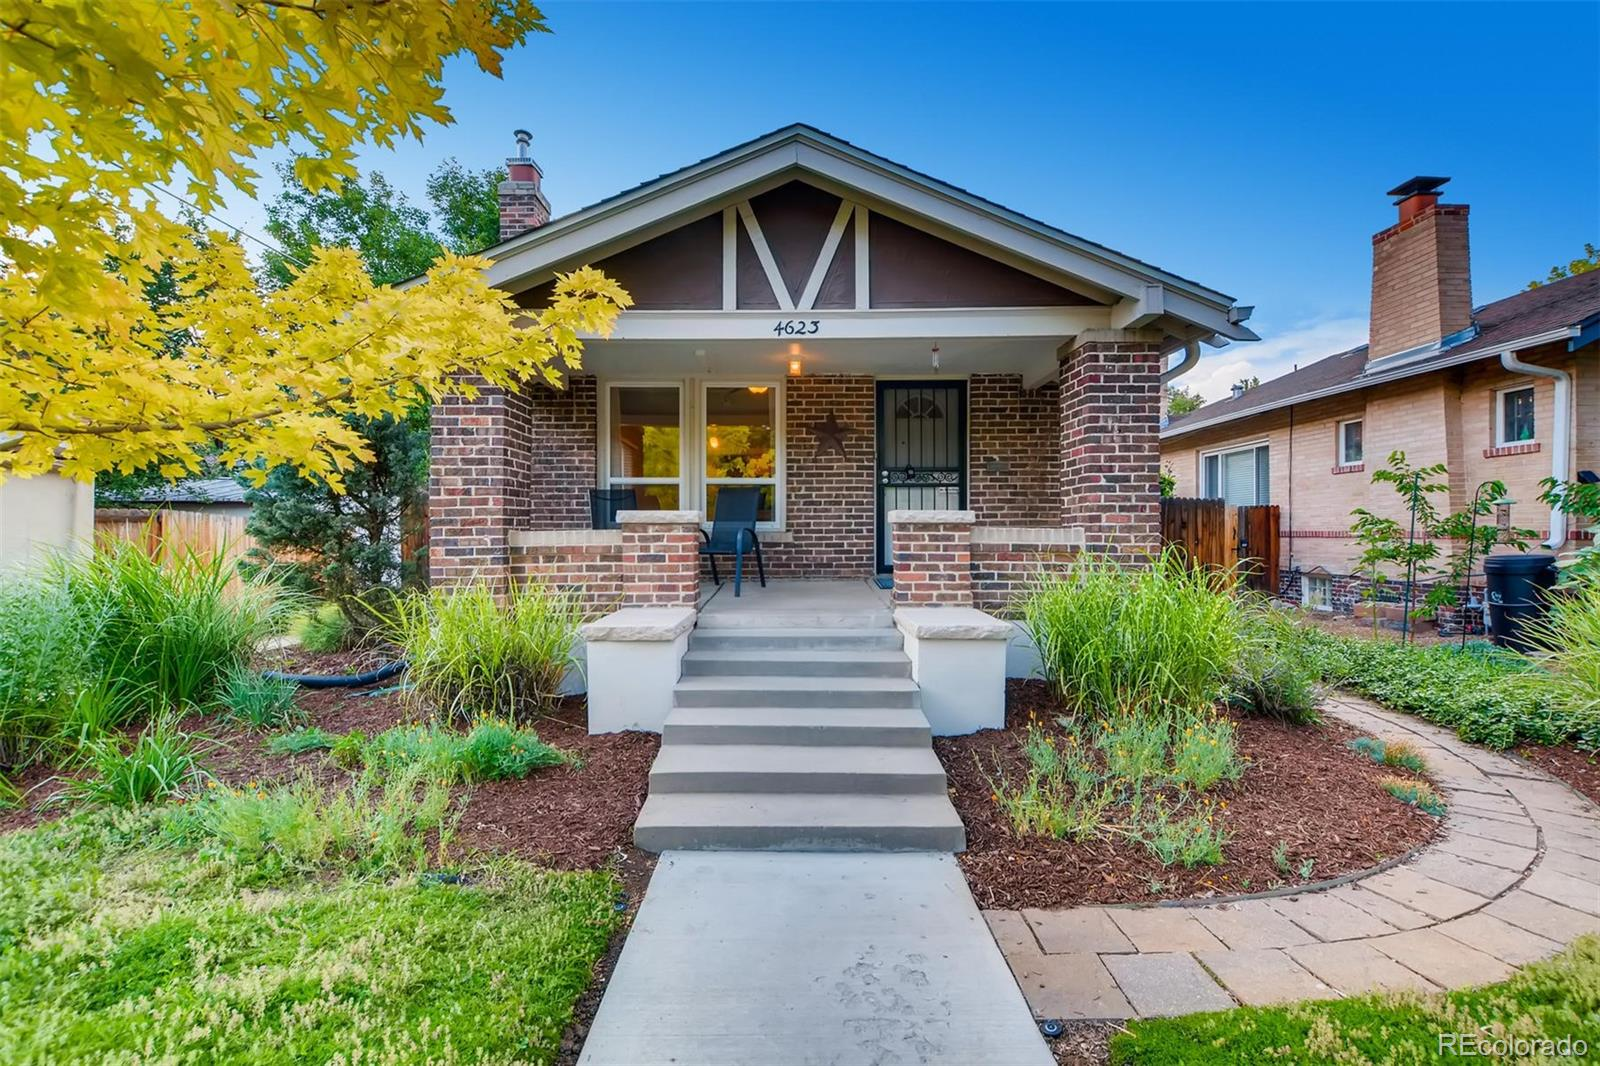 MLS# 6242381 - 1 - 4623 E 16th Avenue, Denver, CO 80220